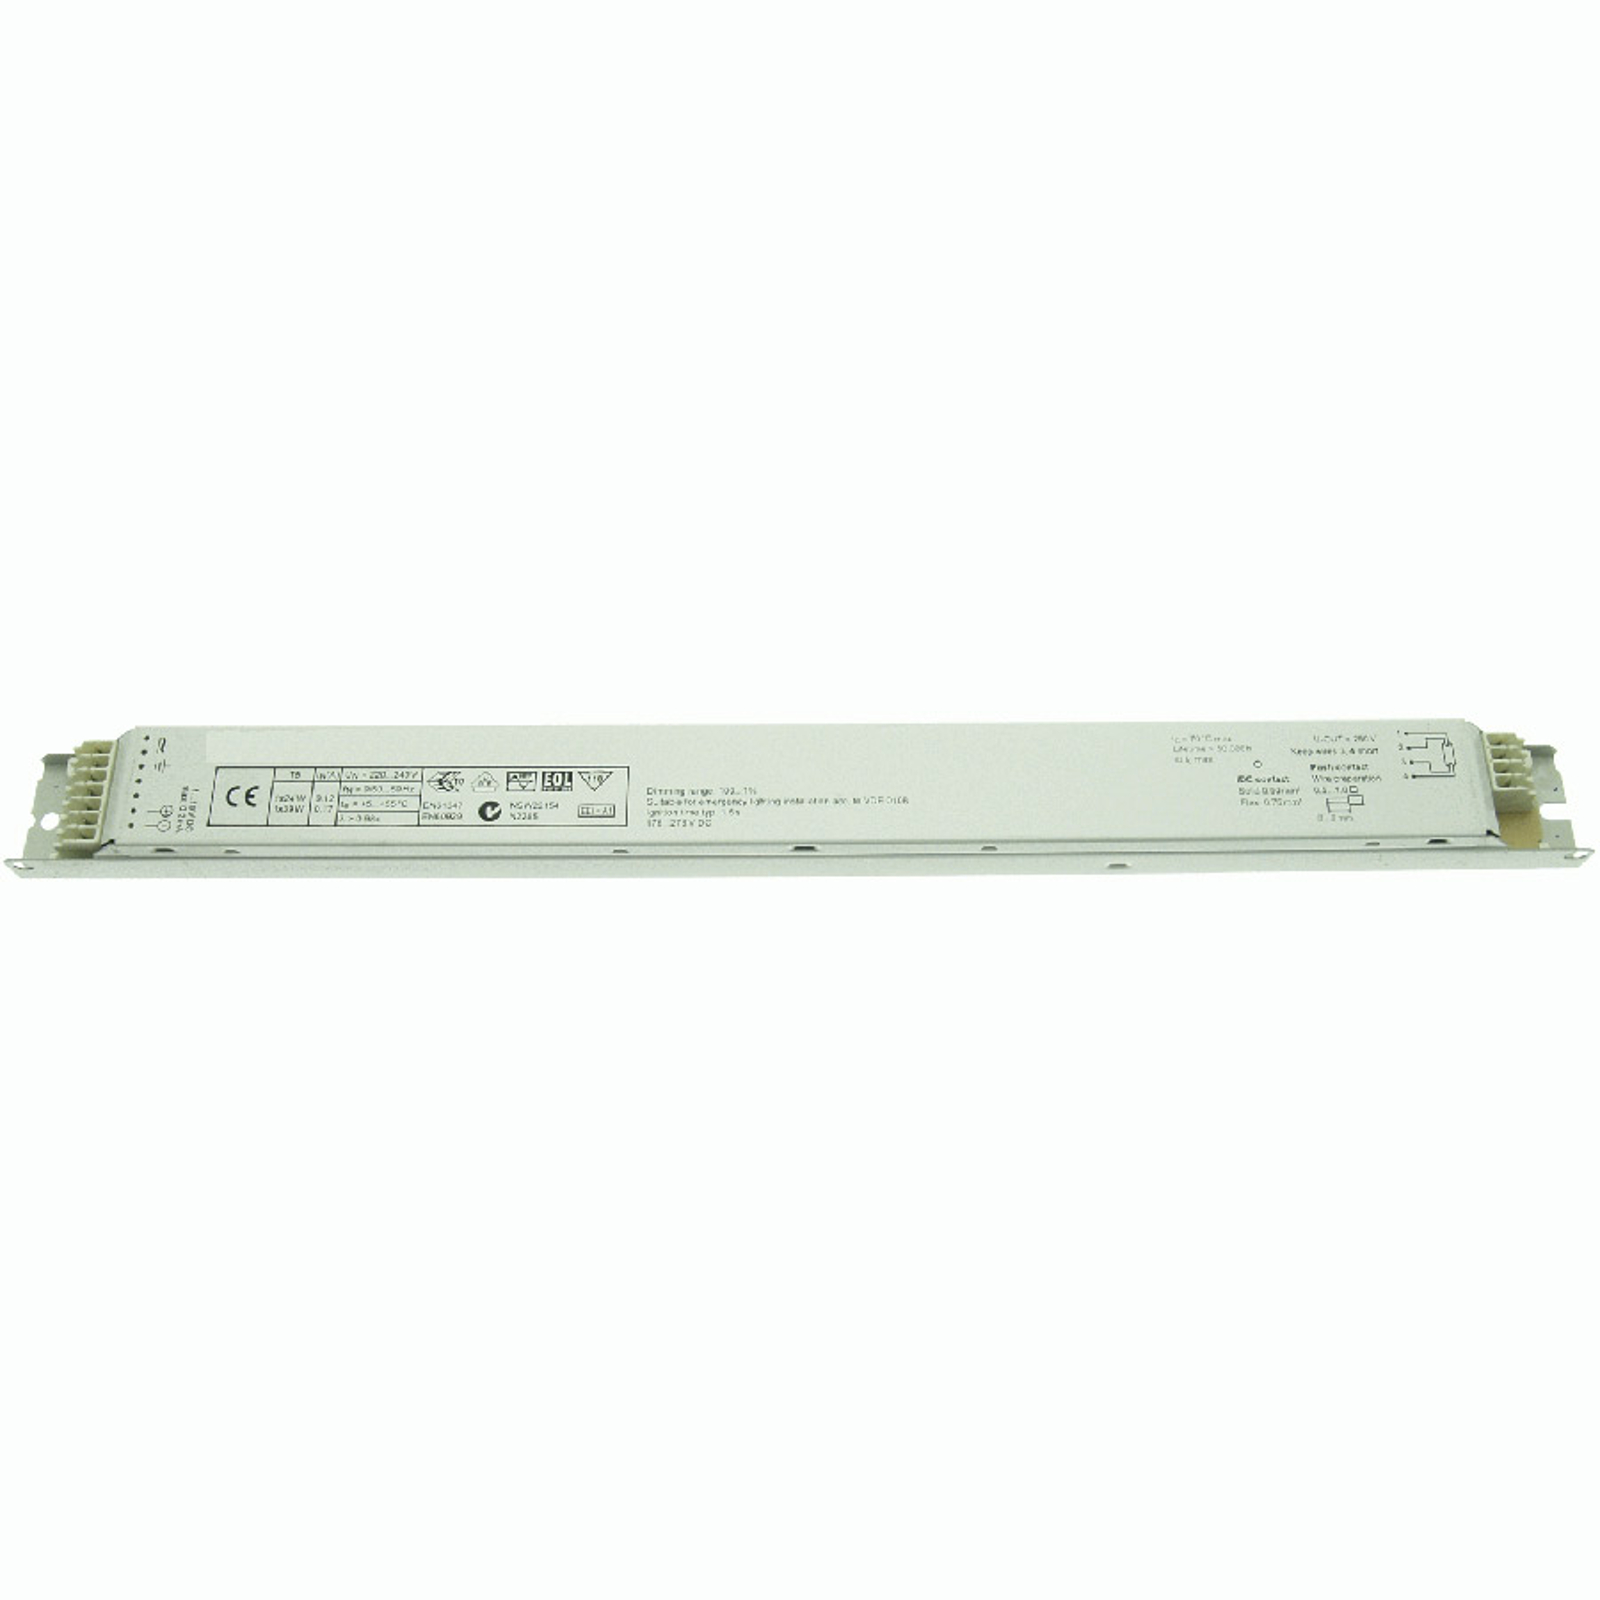 BE dimmable 24/39W T5 BCD39.1F-01/220-240/1-10V